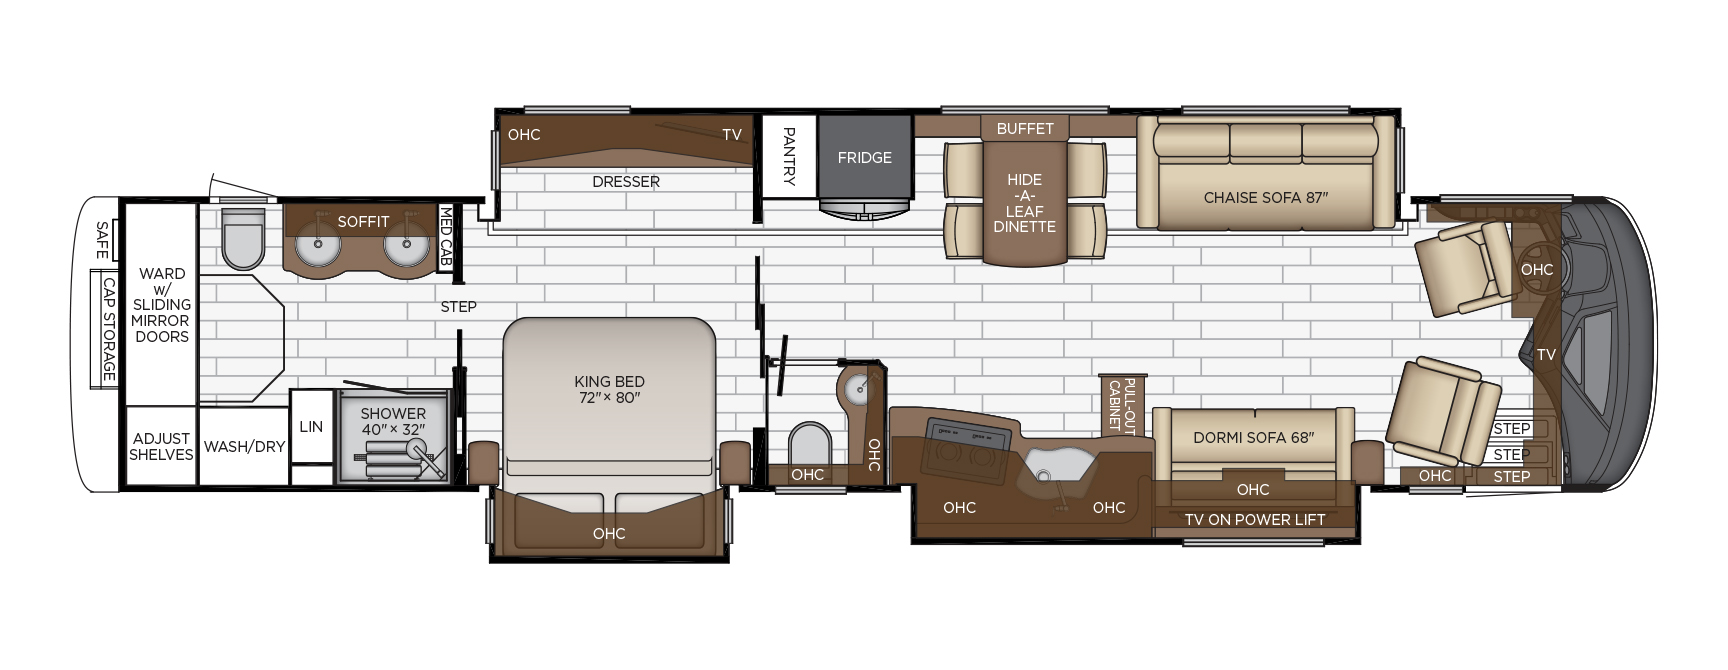 Es floor plan options | Newmar on rustic bunkhouse plans, large bunkhouse plans, park model plans, rv houses inside, camper plans, rv floor plan of s, rv floor plan for 20, kingsley coach plans, type a school bus conversion plans,